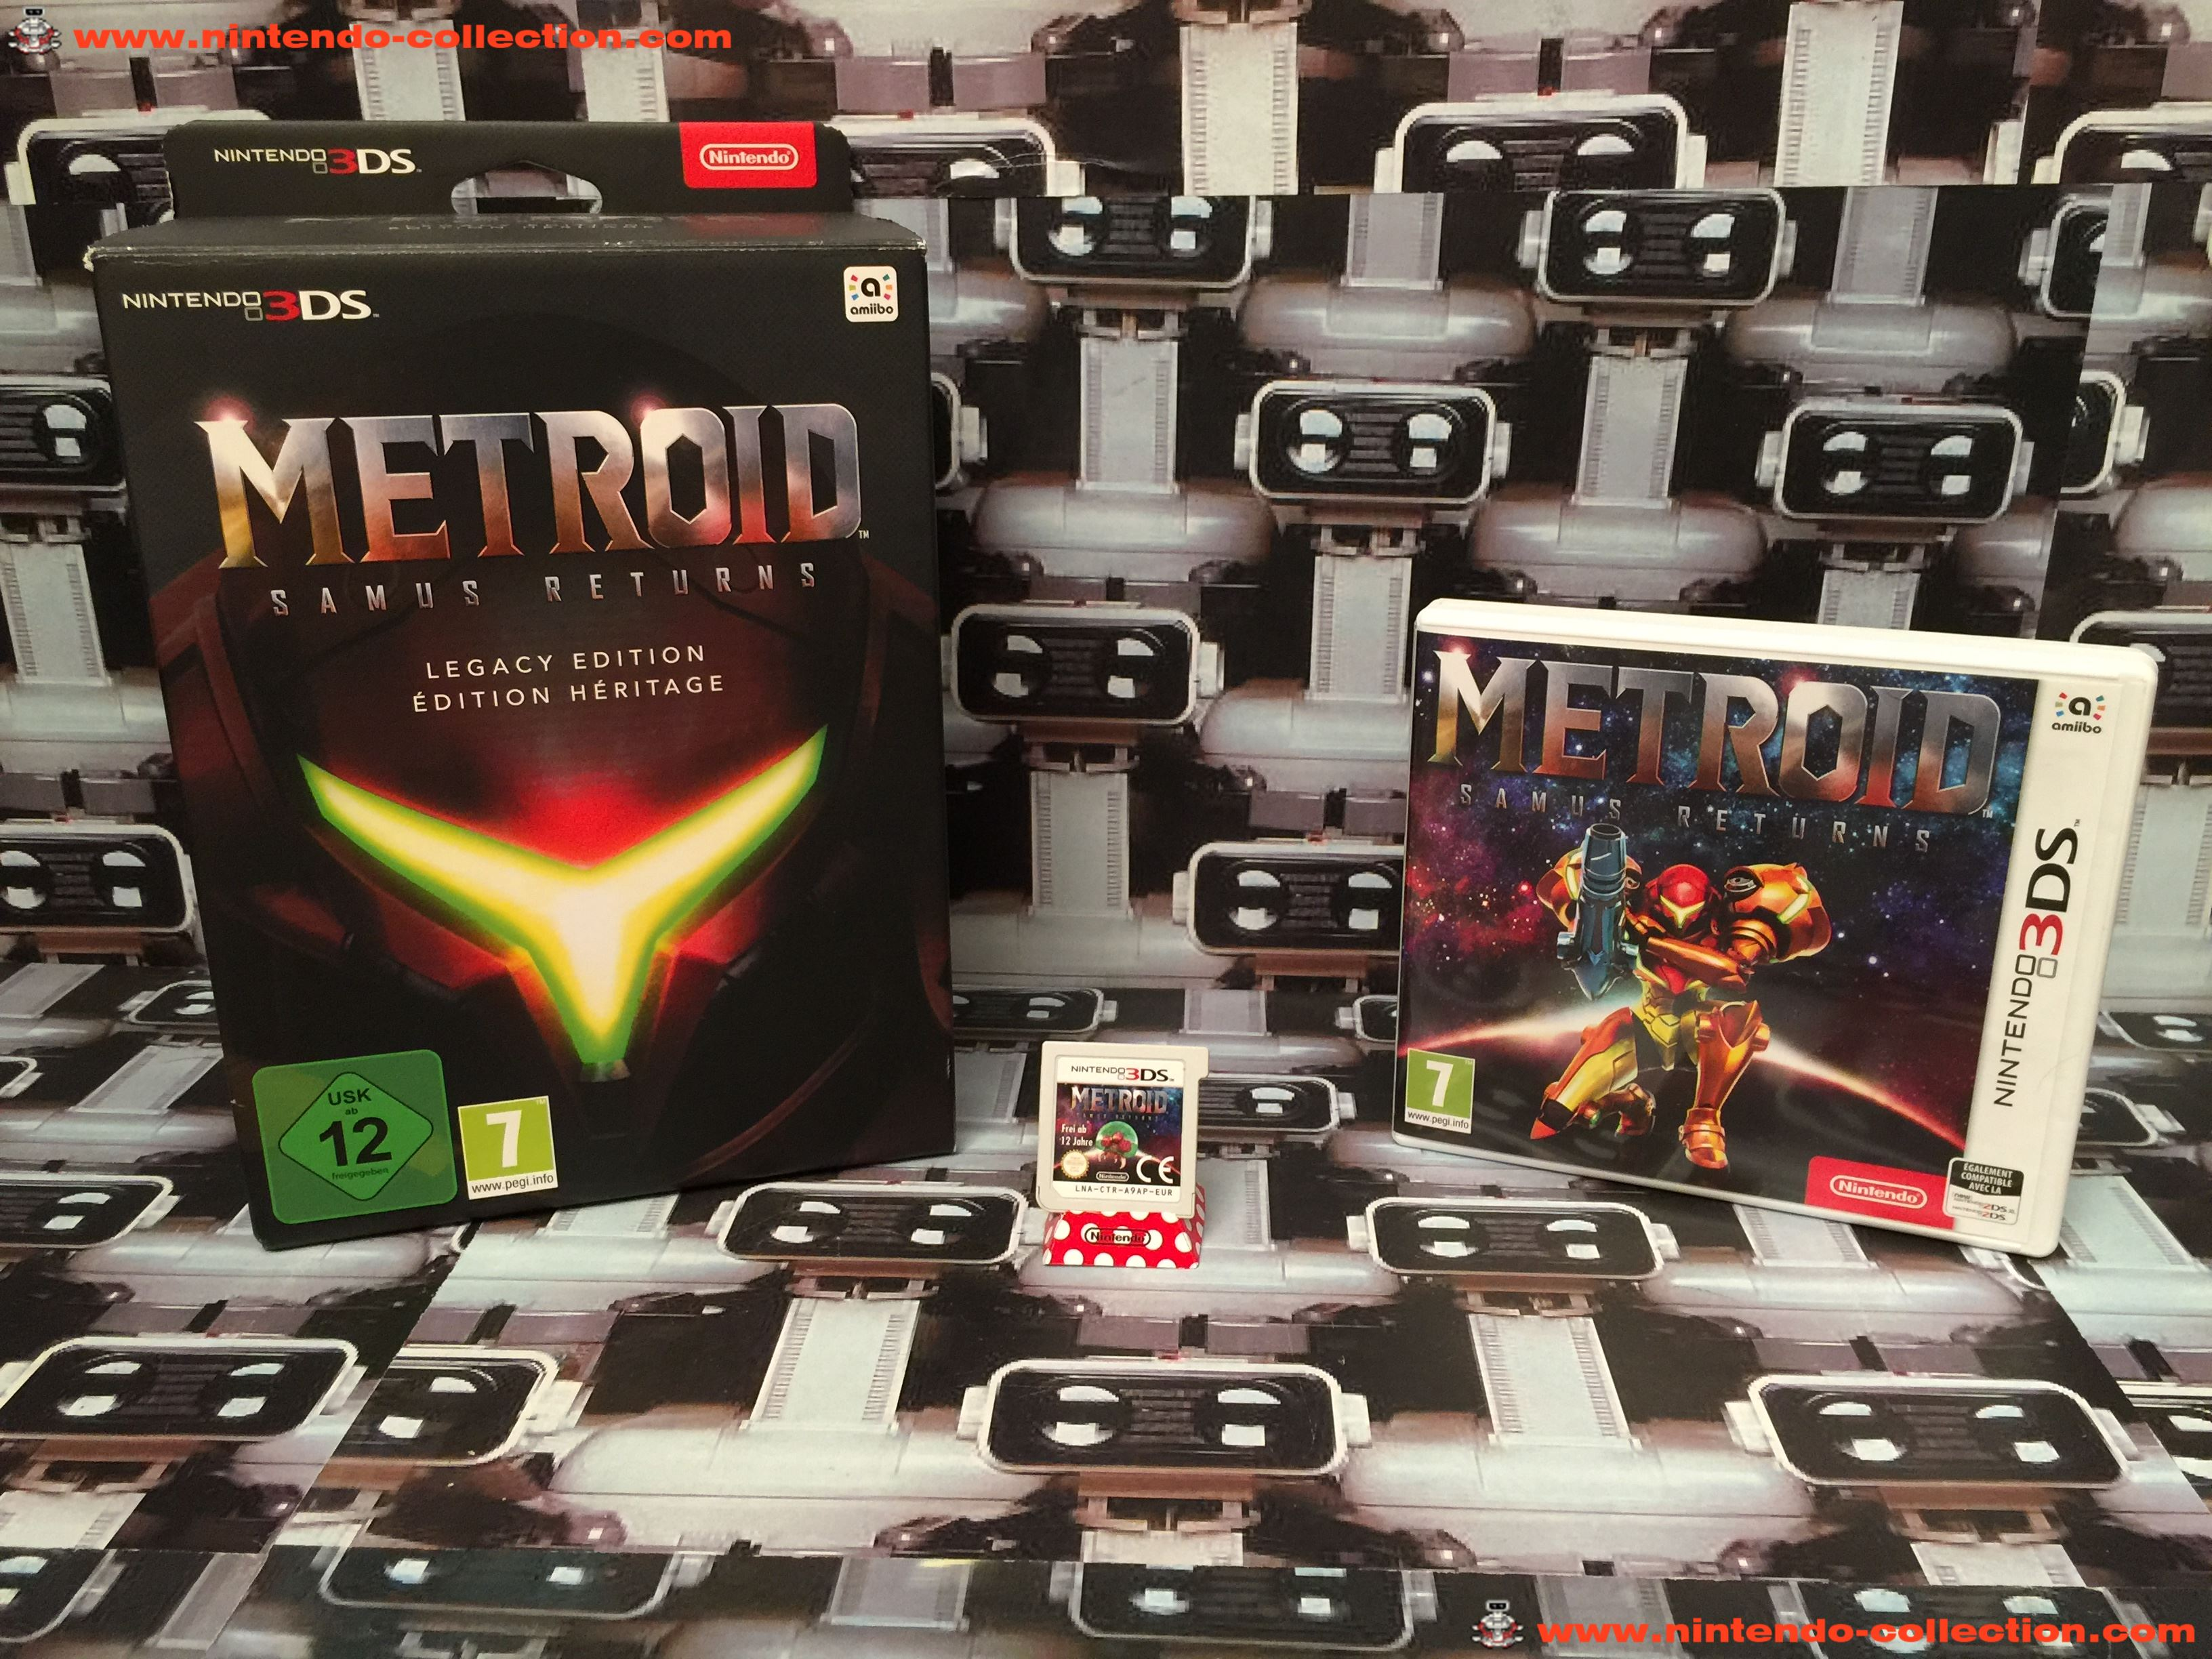 www.nintendo-collection.com - Nintendo 3DS Jeux Game Collector pack Metroid Samus Return